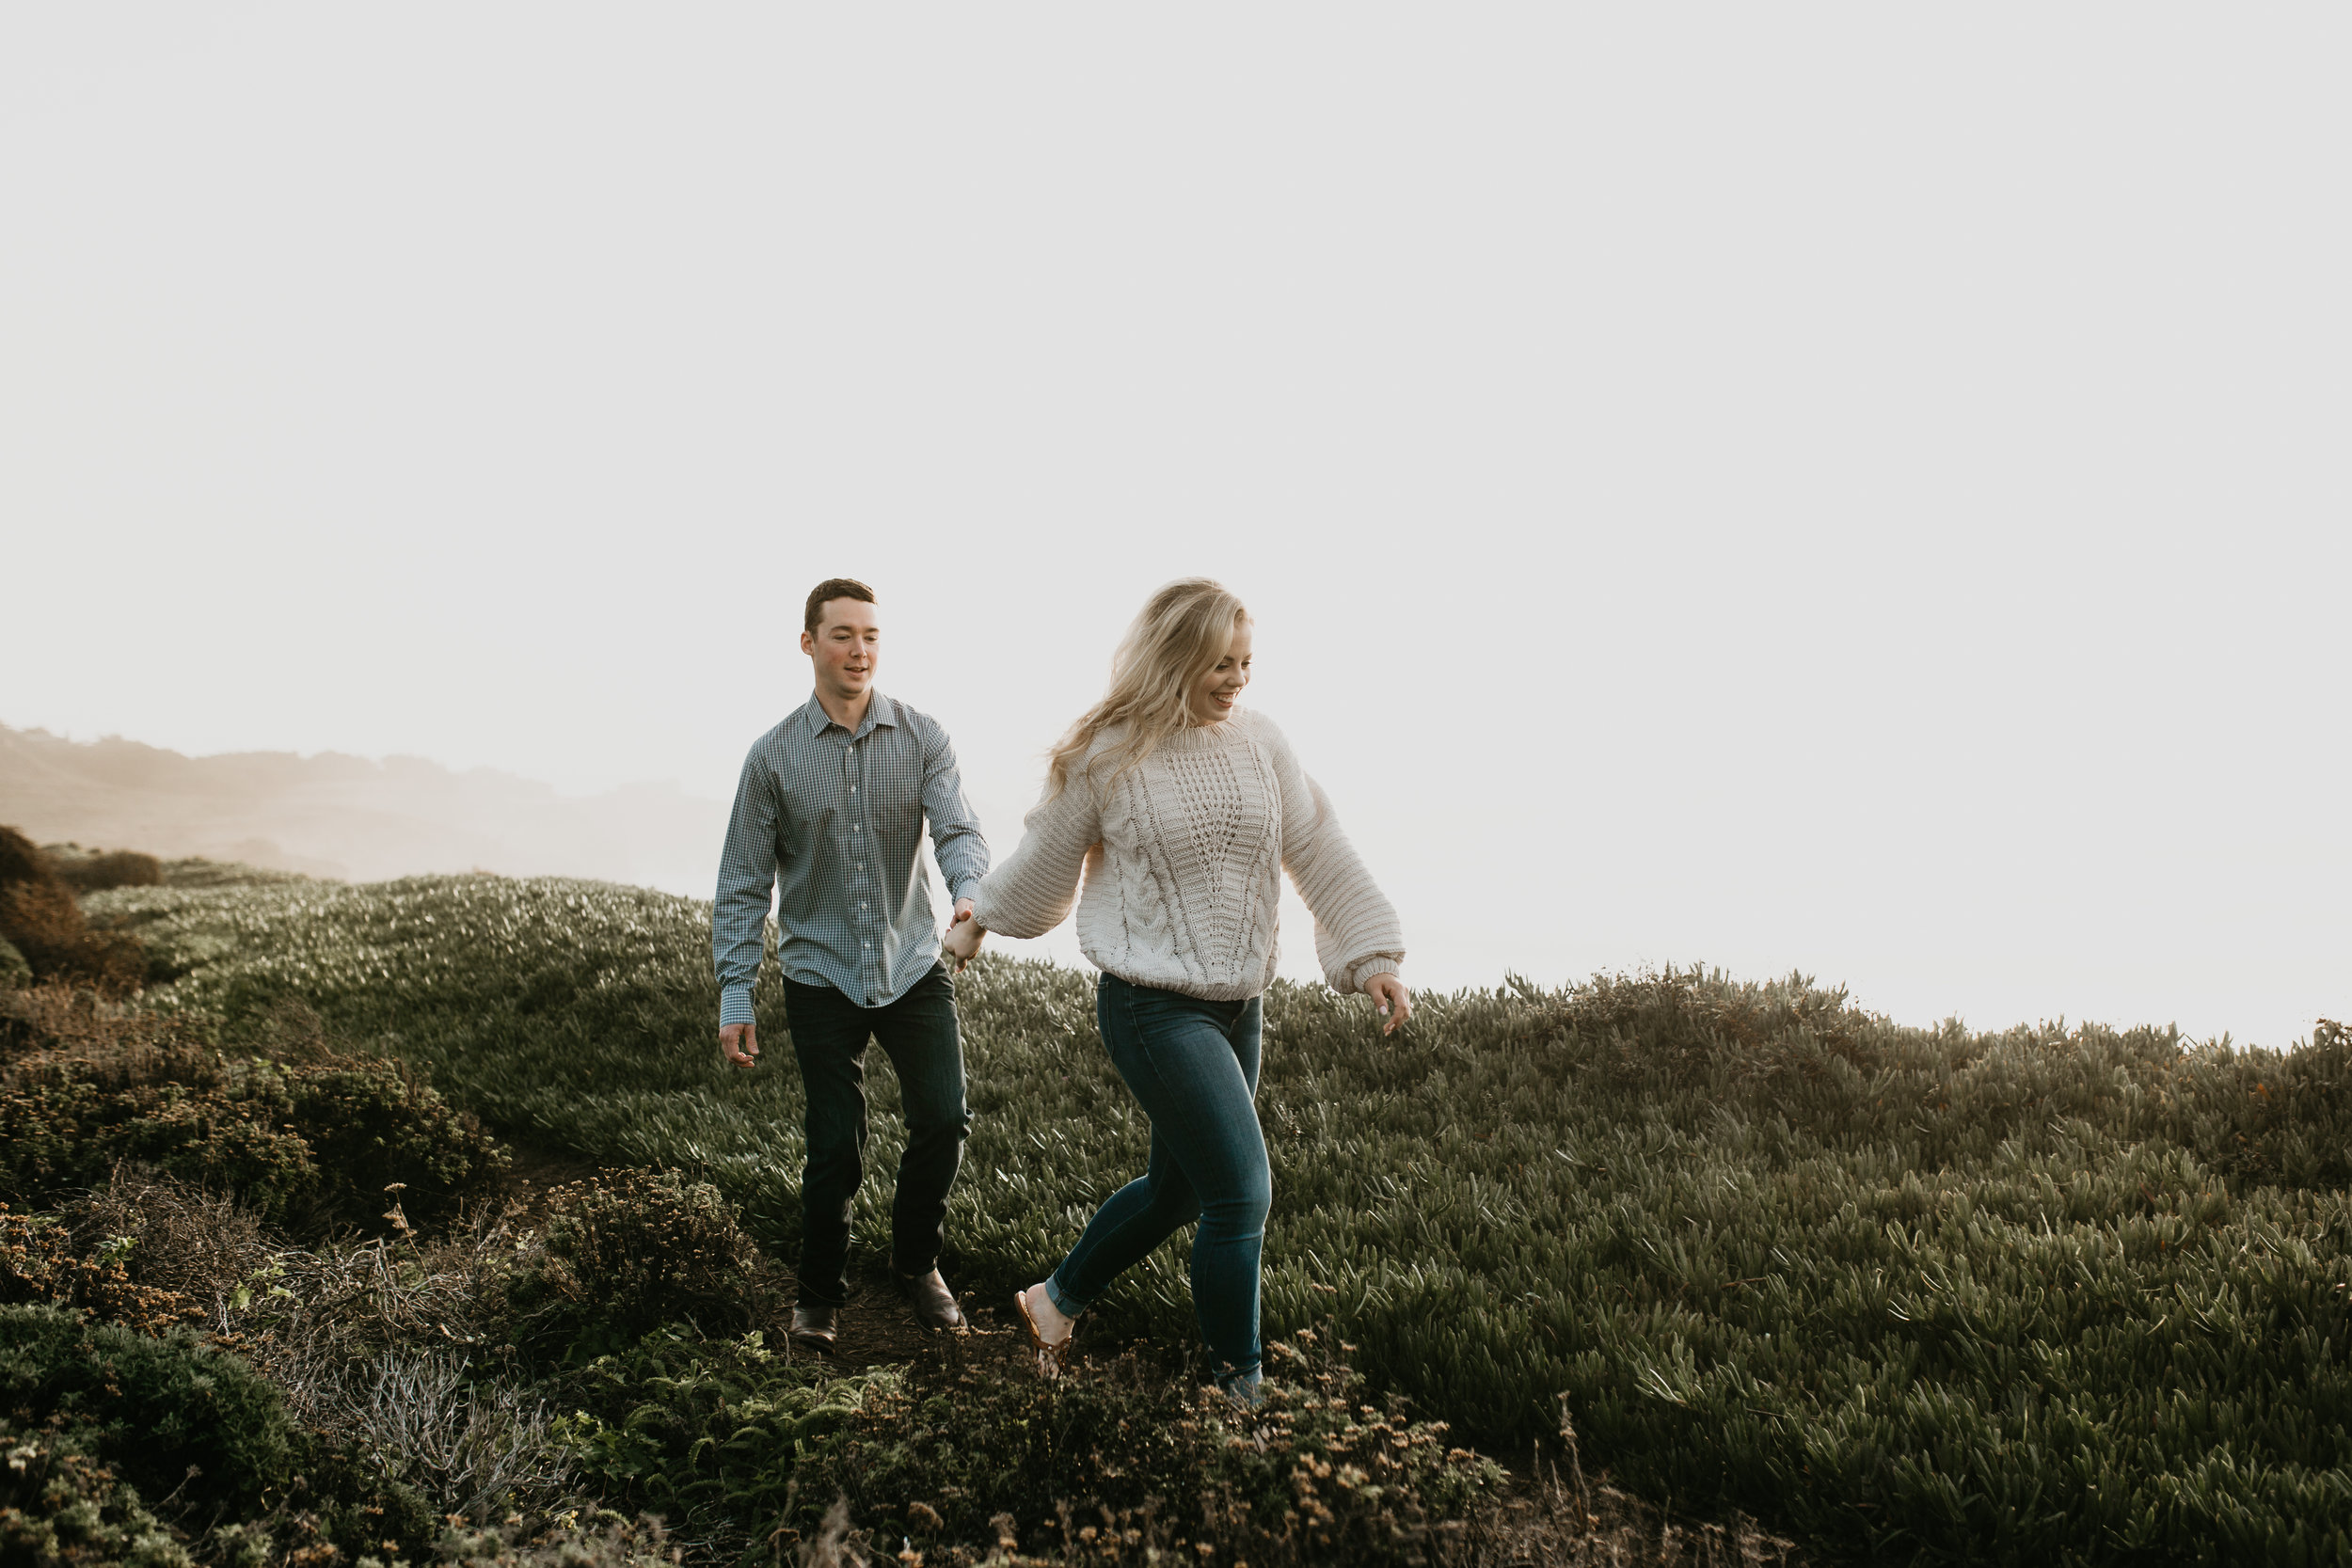 Nicole-Daacke-Photography-big-sur-garrapatta-state-park-adventurous-engagement-session-bixy-bridge-elopement-big-sur-wedding-photographer-monterey-elopement-photographer-california-golden-sunset-coast-photos-16.jpg